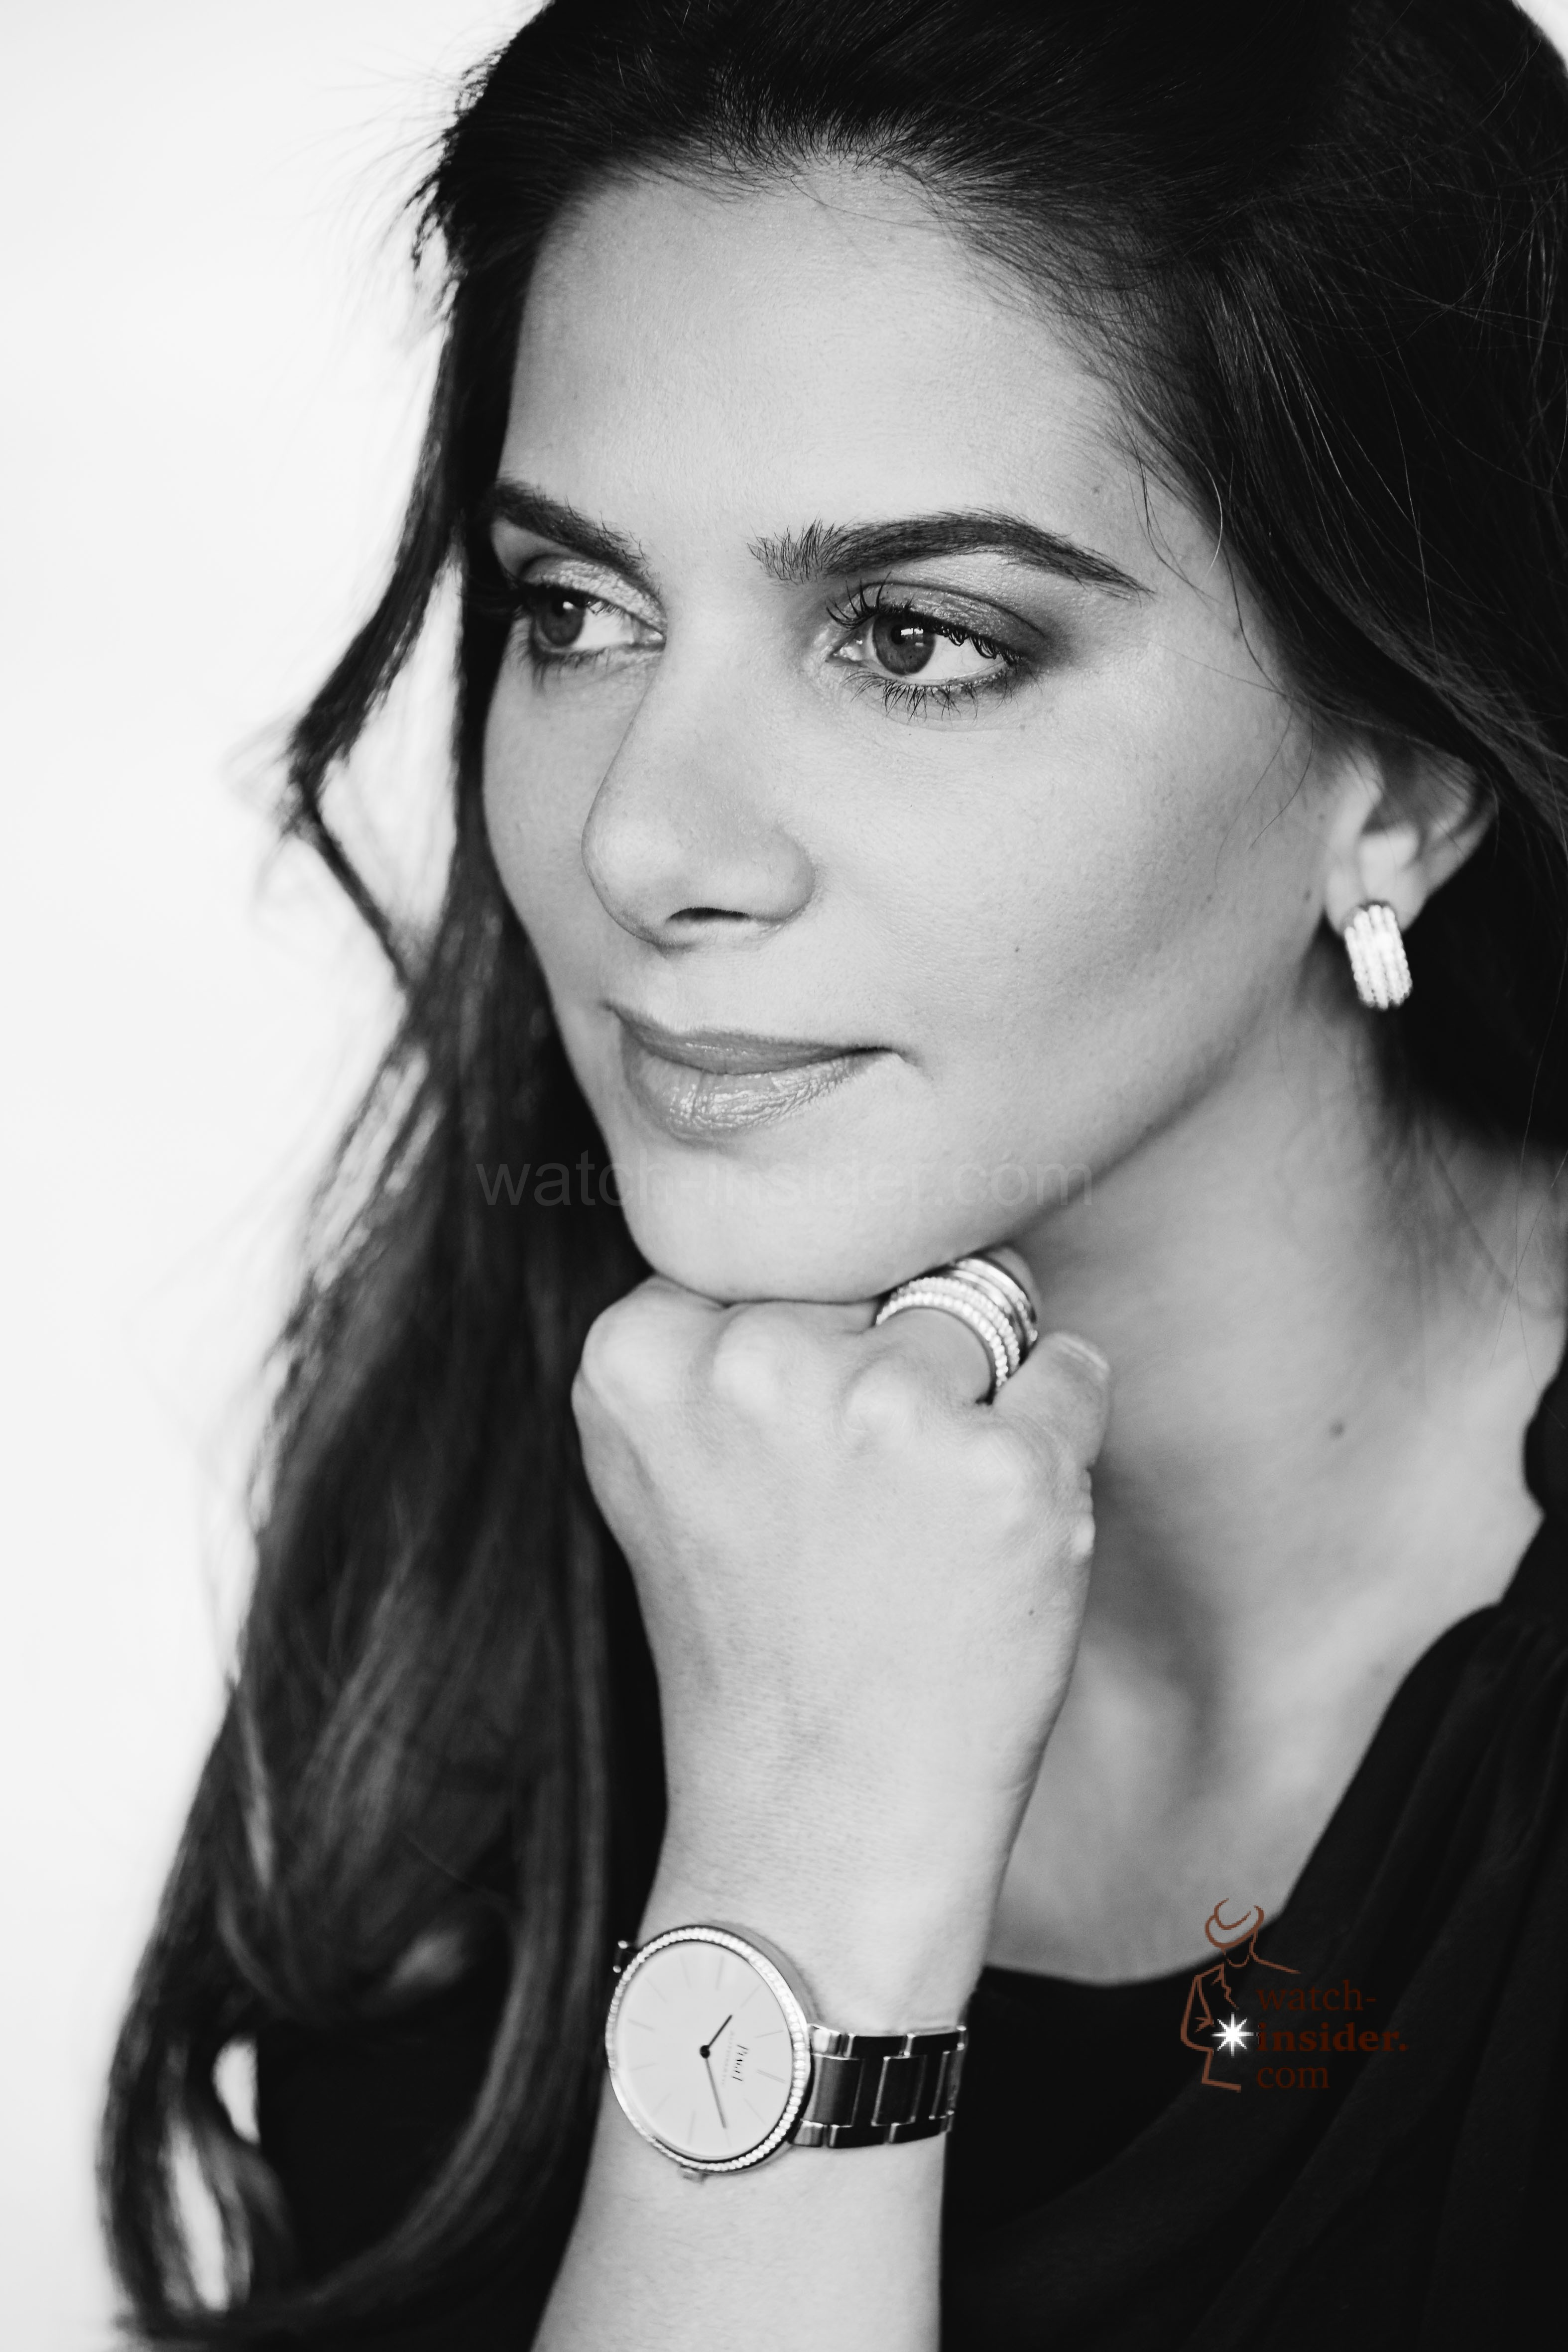 Today Ms Chabi Nouri was officially announced to be the next CEO of Piaget.